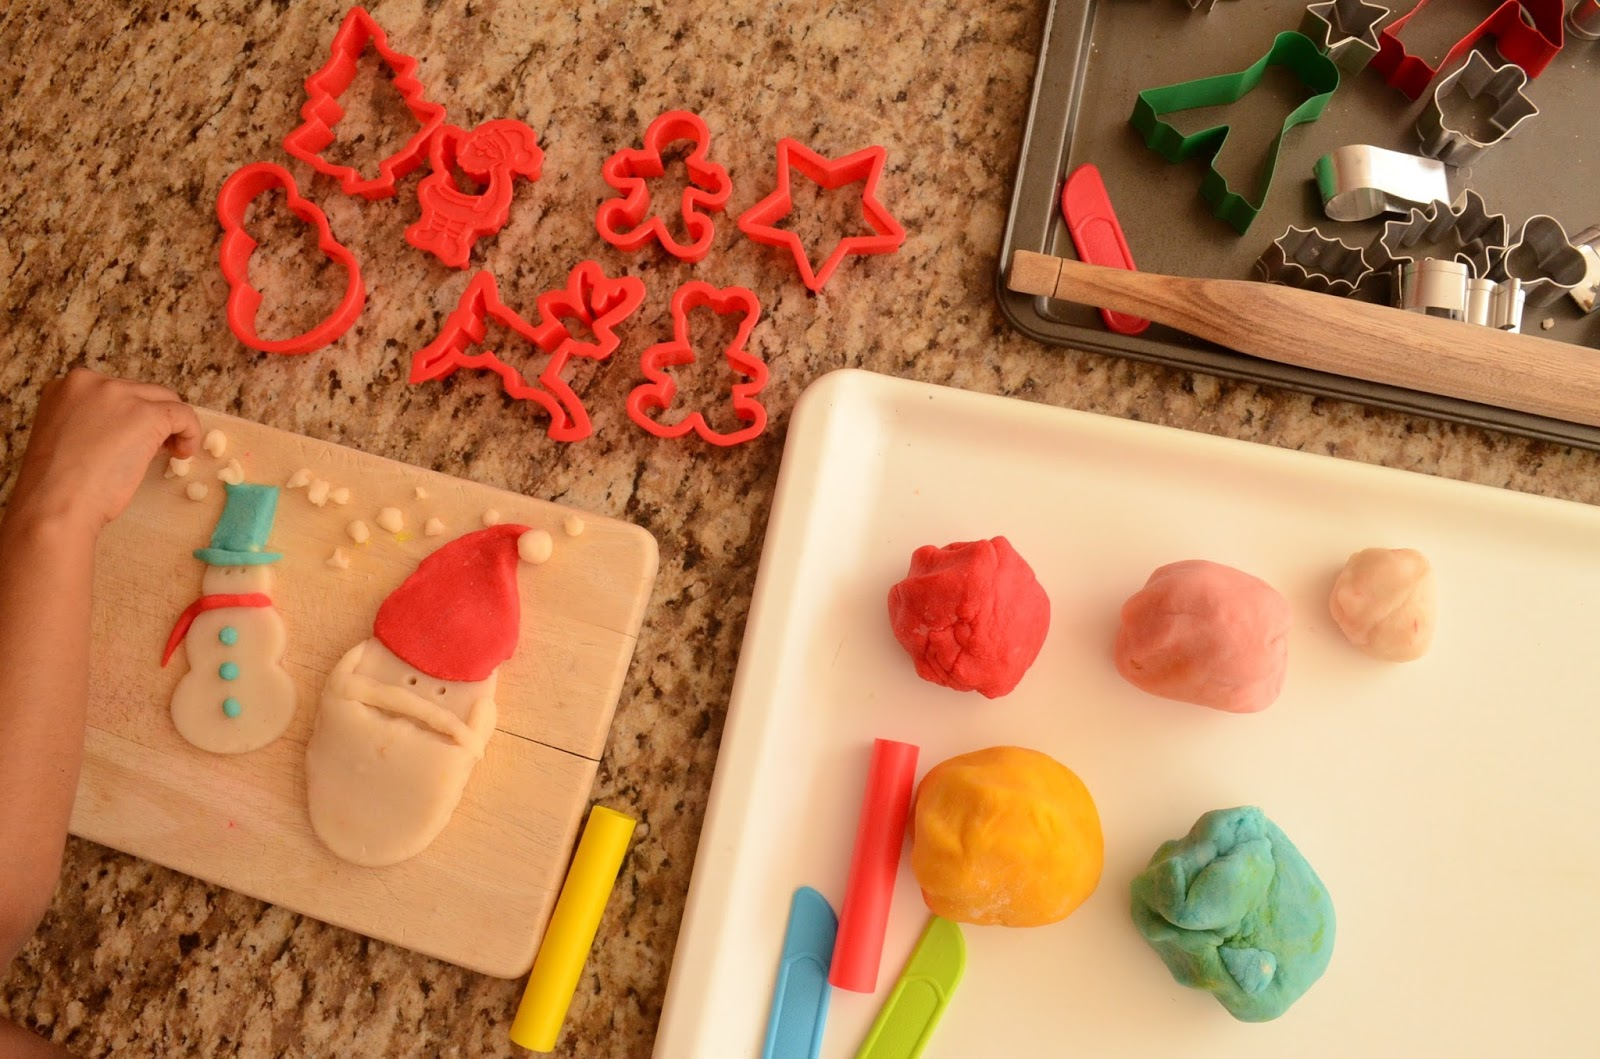 Practical Mom: We MADE play dough! With cream of tartar